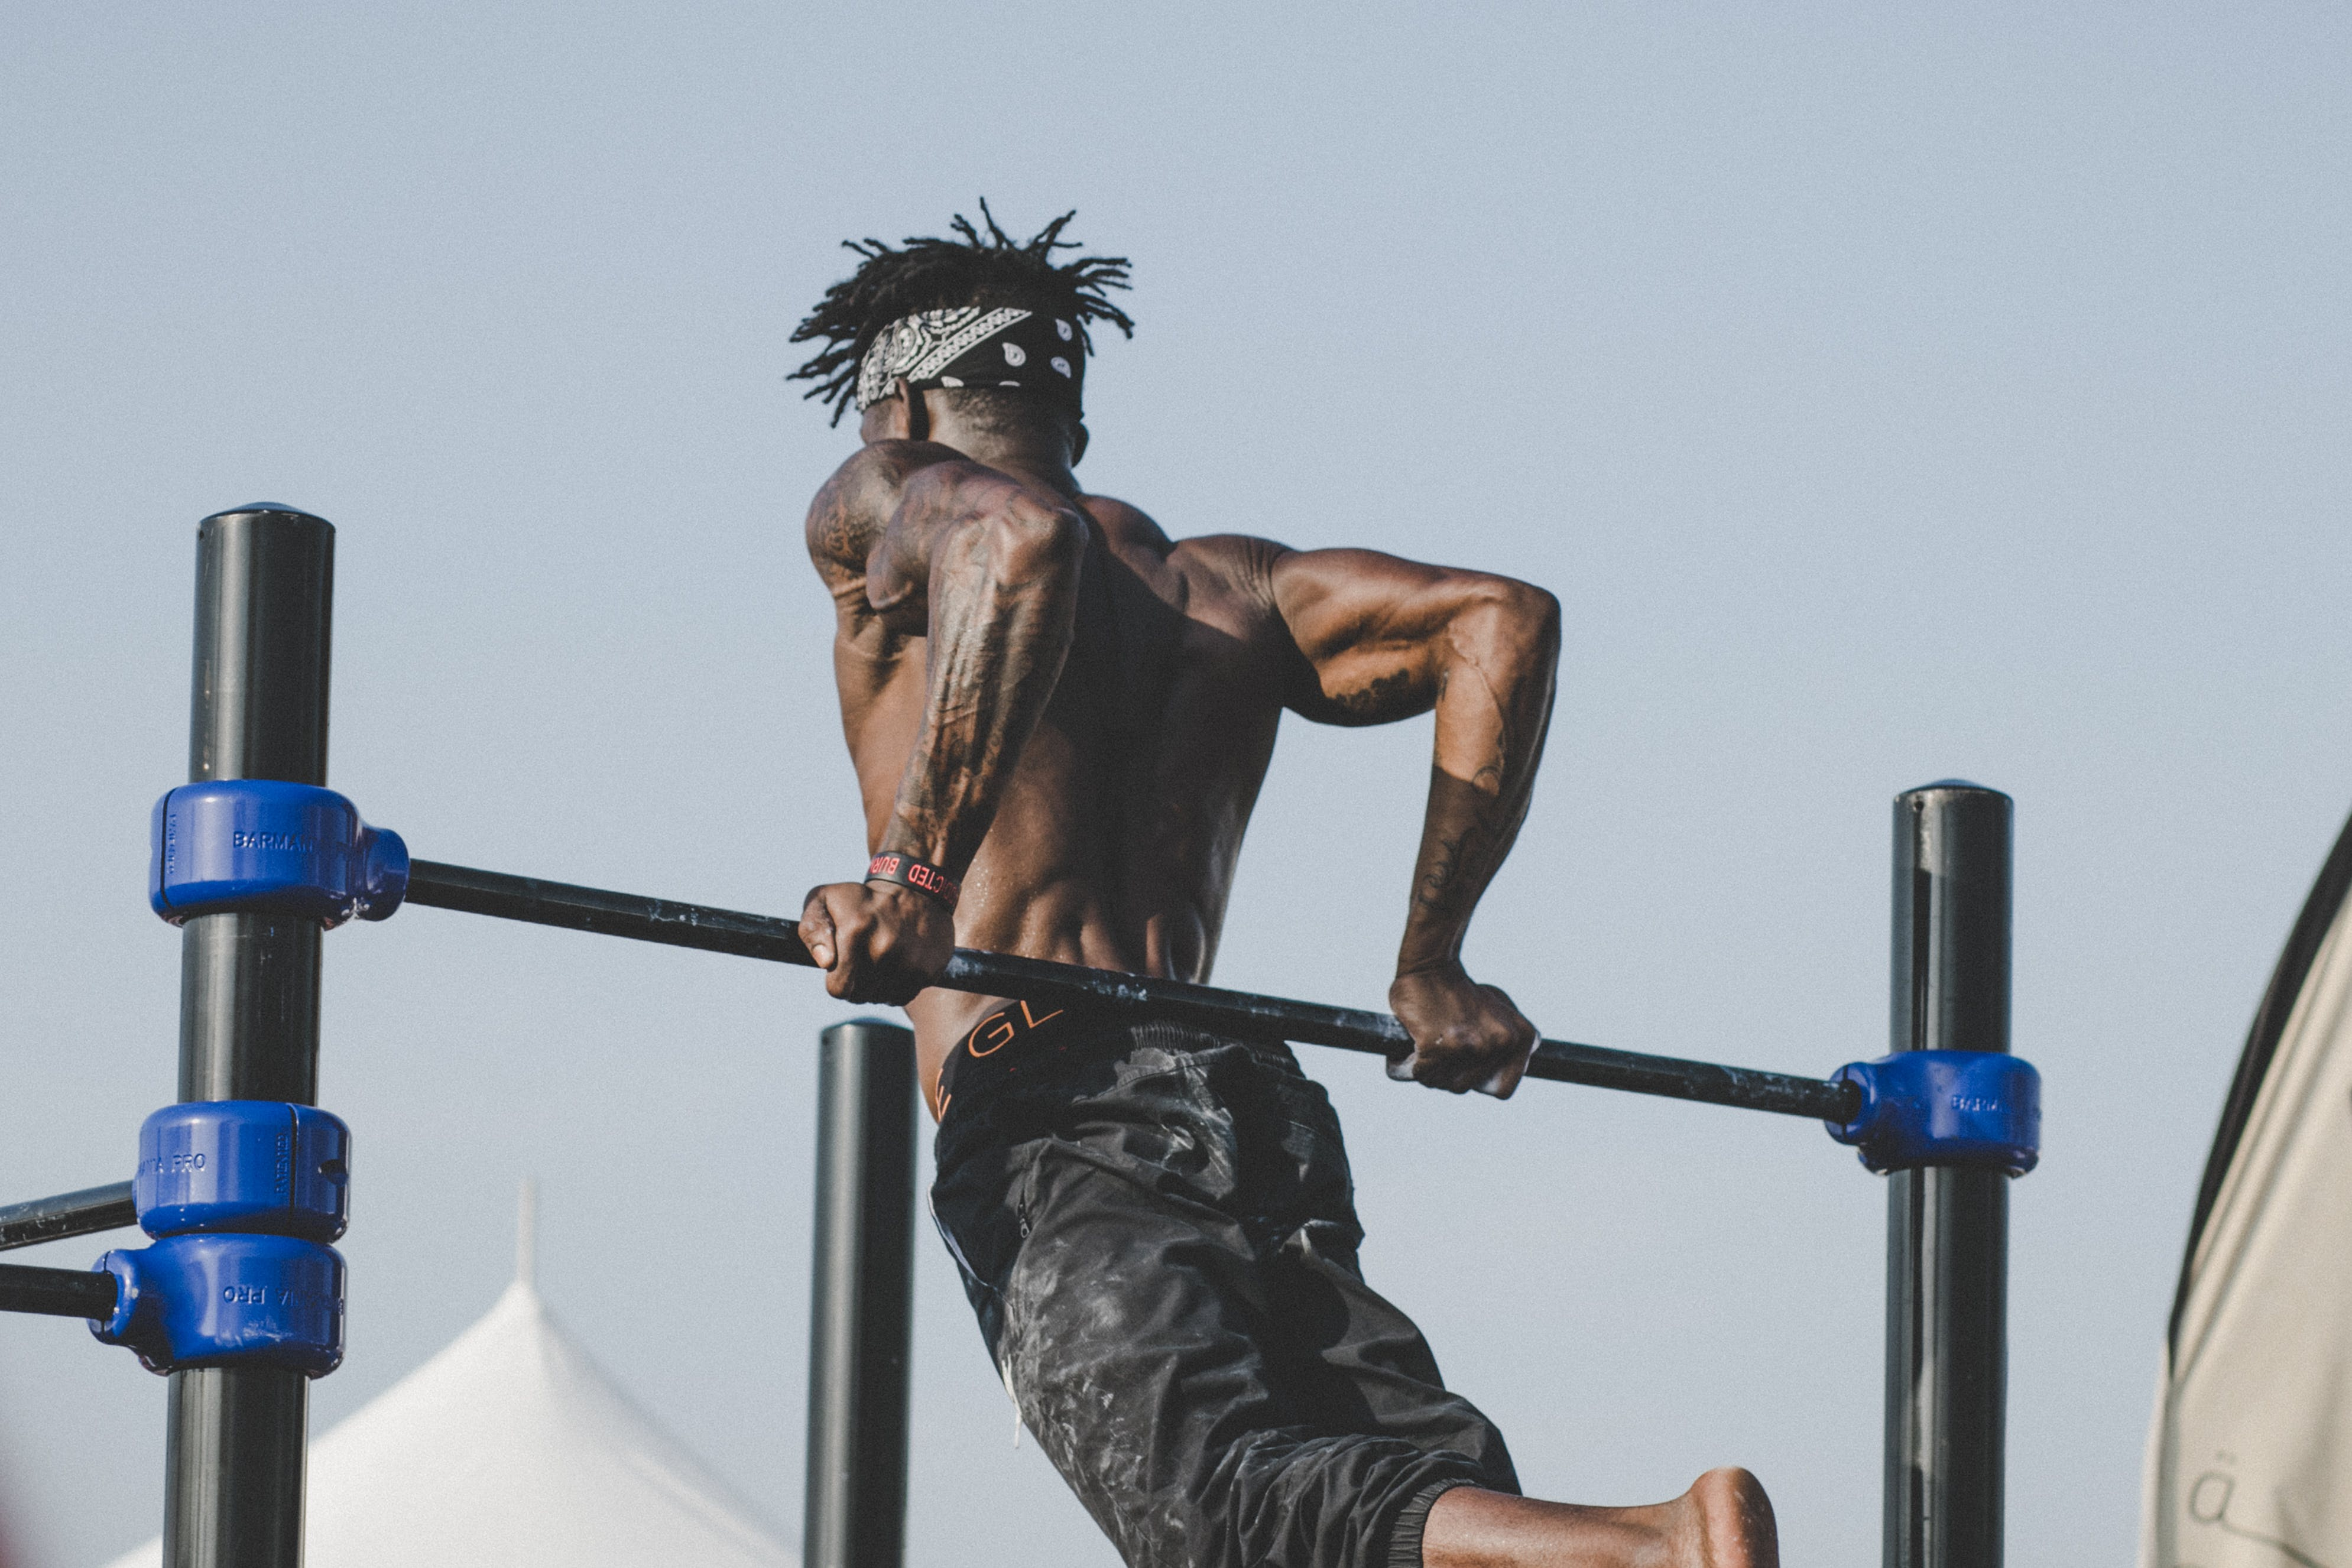 Man in Black Jeans Doing Pull-ups